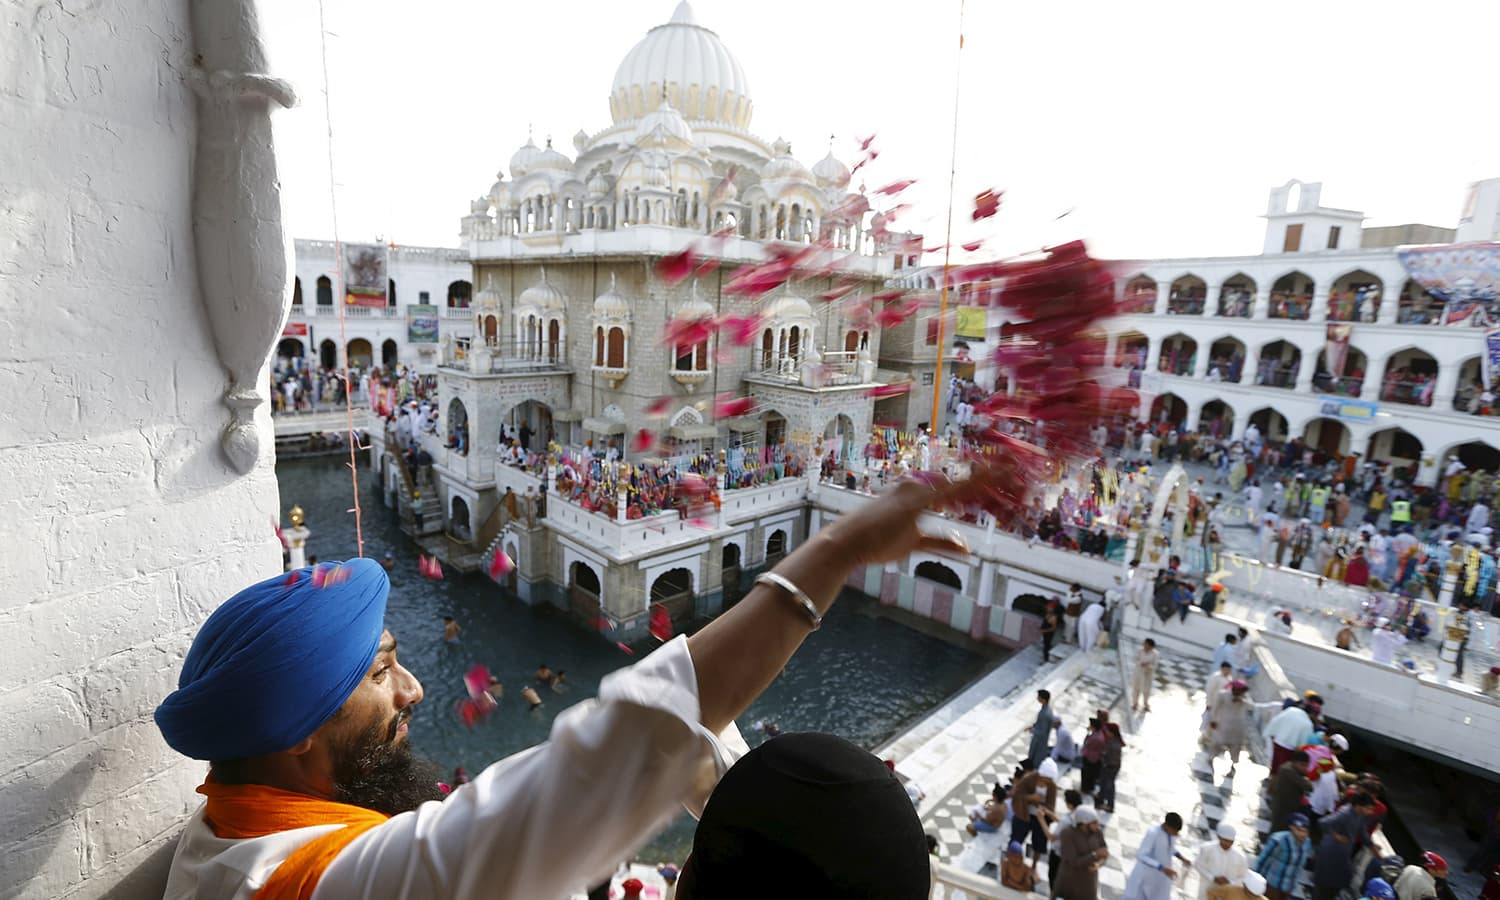 A Sikh devotee throws flower petals as the procession passes by during the Baisakhi festival at Panja Sahib shrine in Hassan Abdal.— Reuters